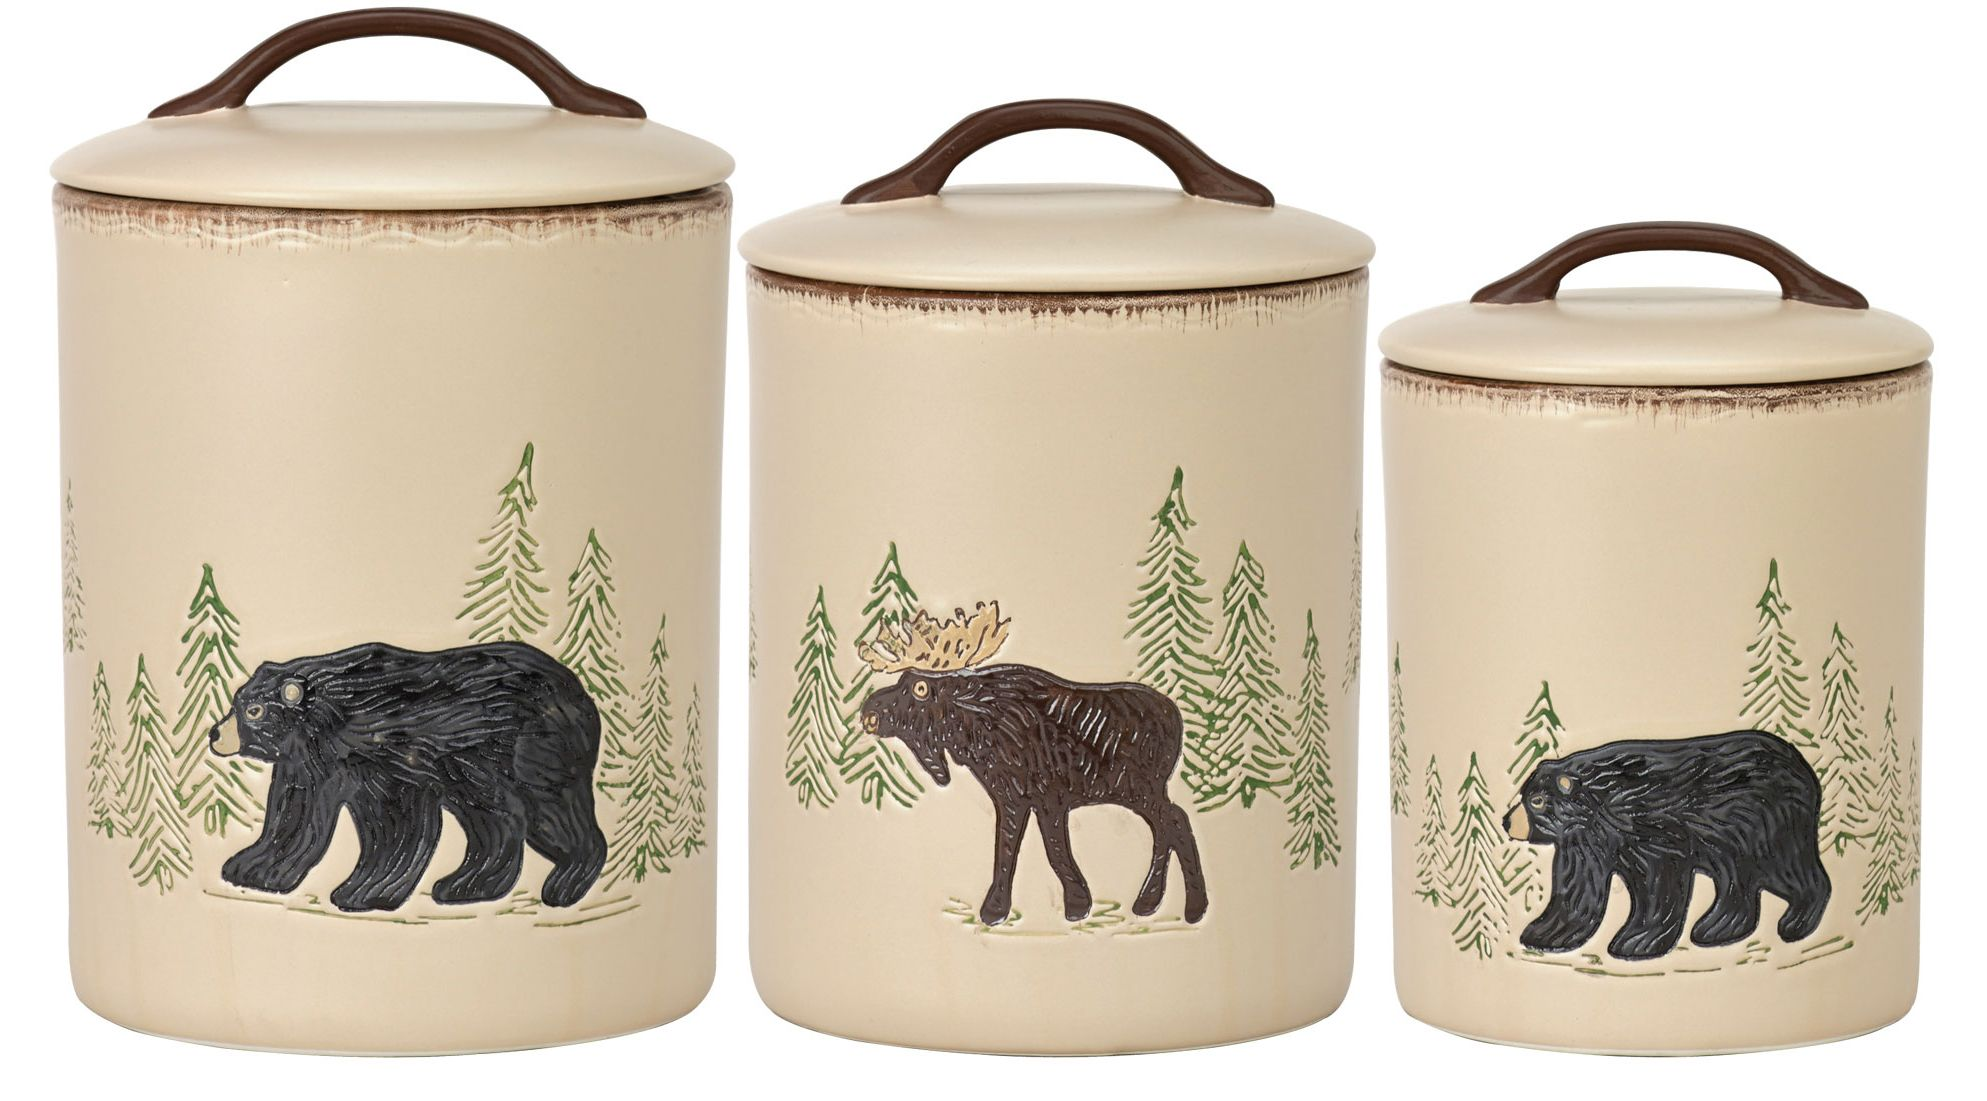 PKD-493-694-Rustic-Retreat-Canister-Set-LRG